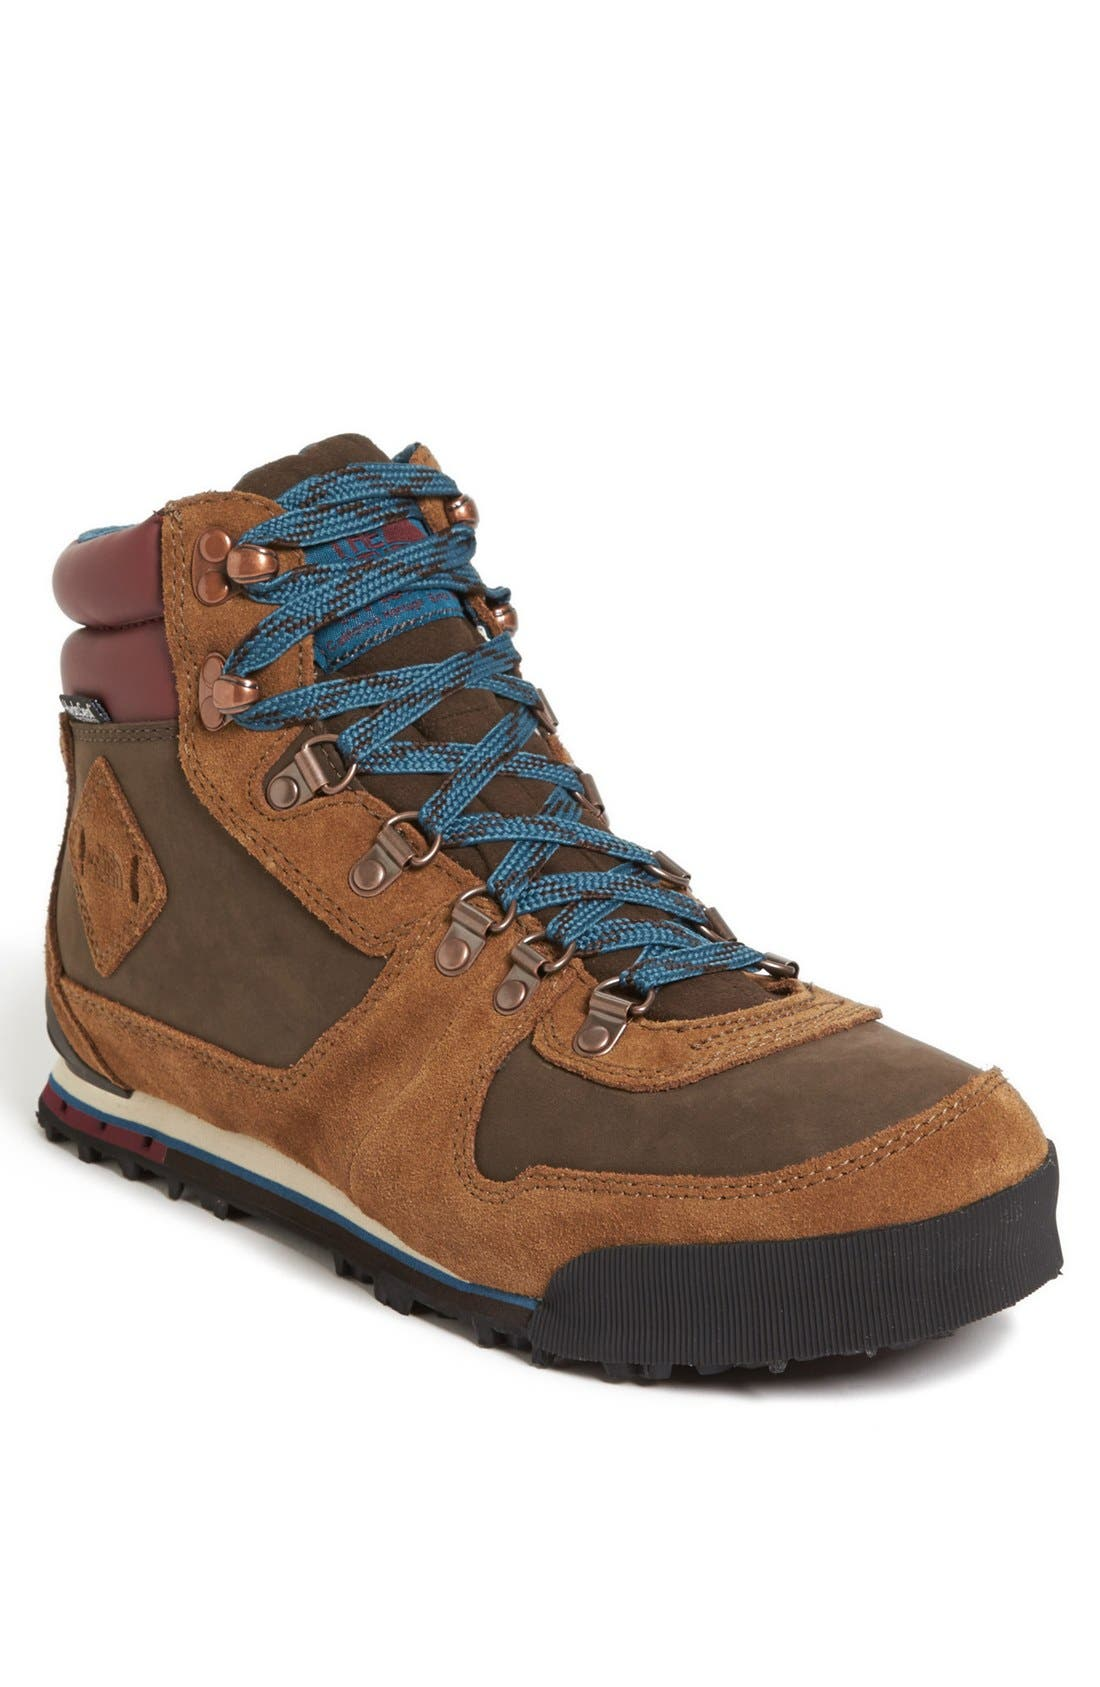 Main Image - The North Face 'Back to Berkeley' Boot (Online Exclusive)